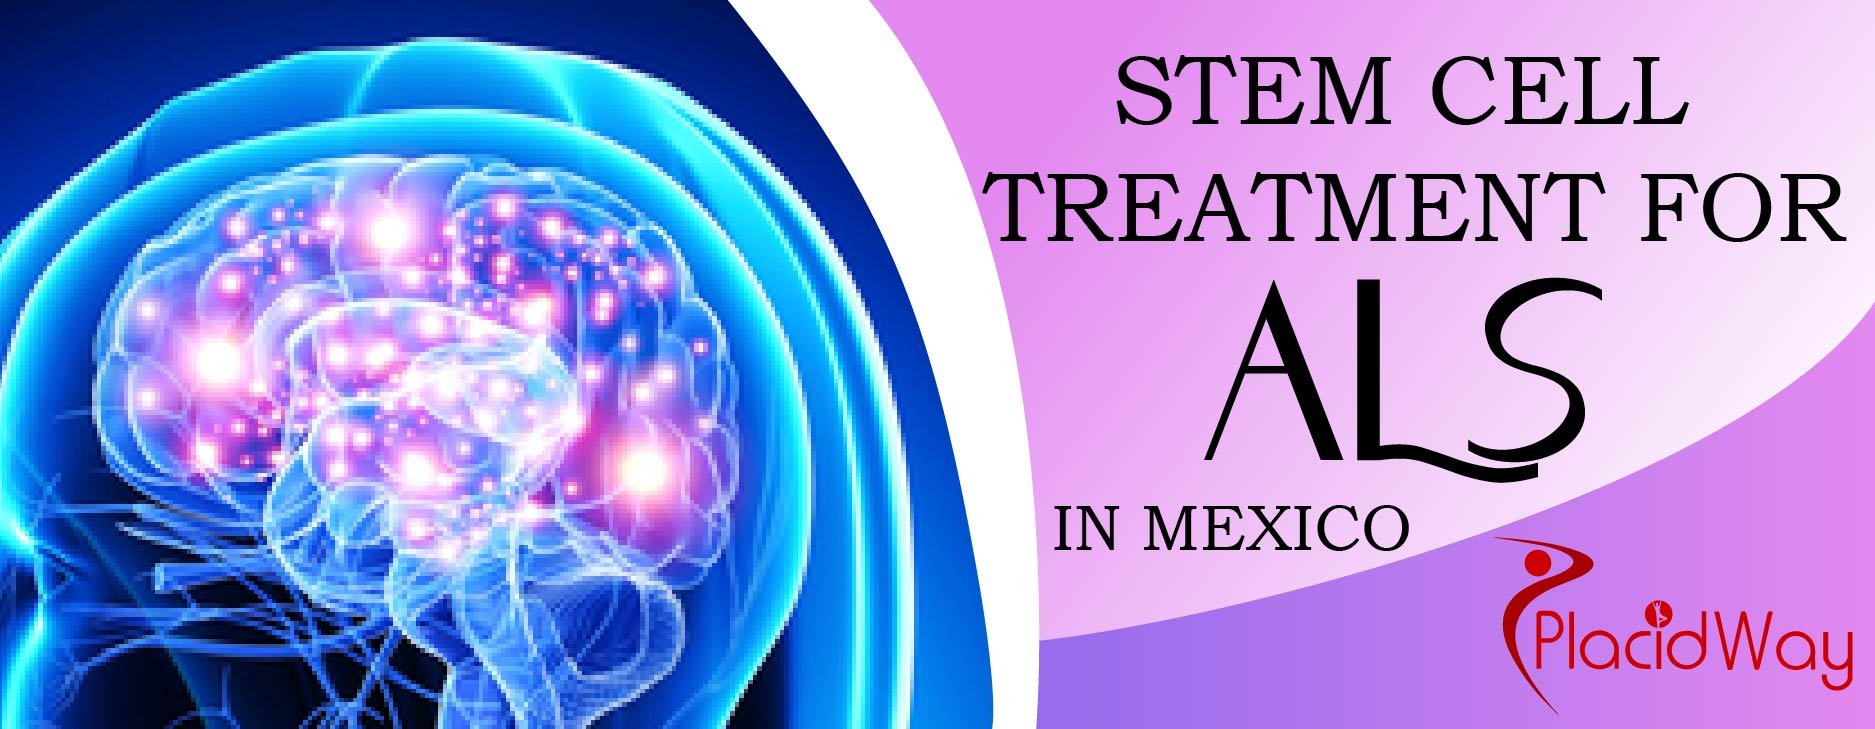 ALS in Mexico, Stem Cell Treatment in Mexico